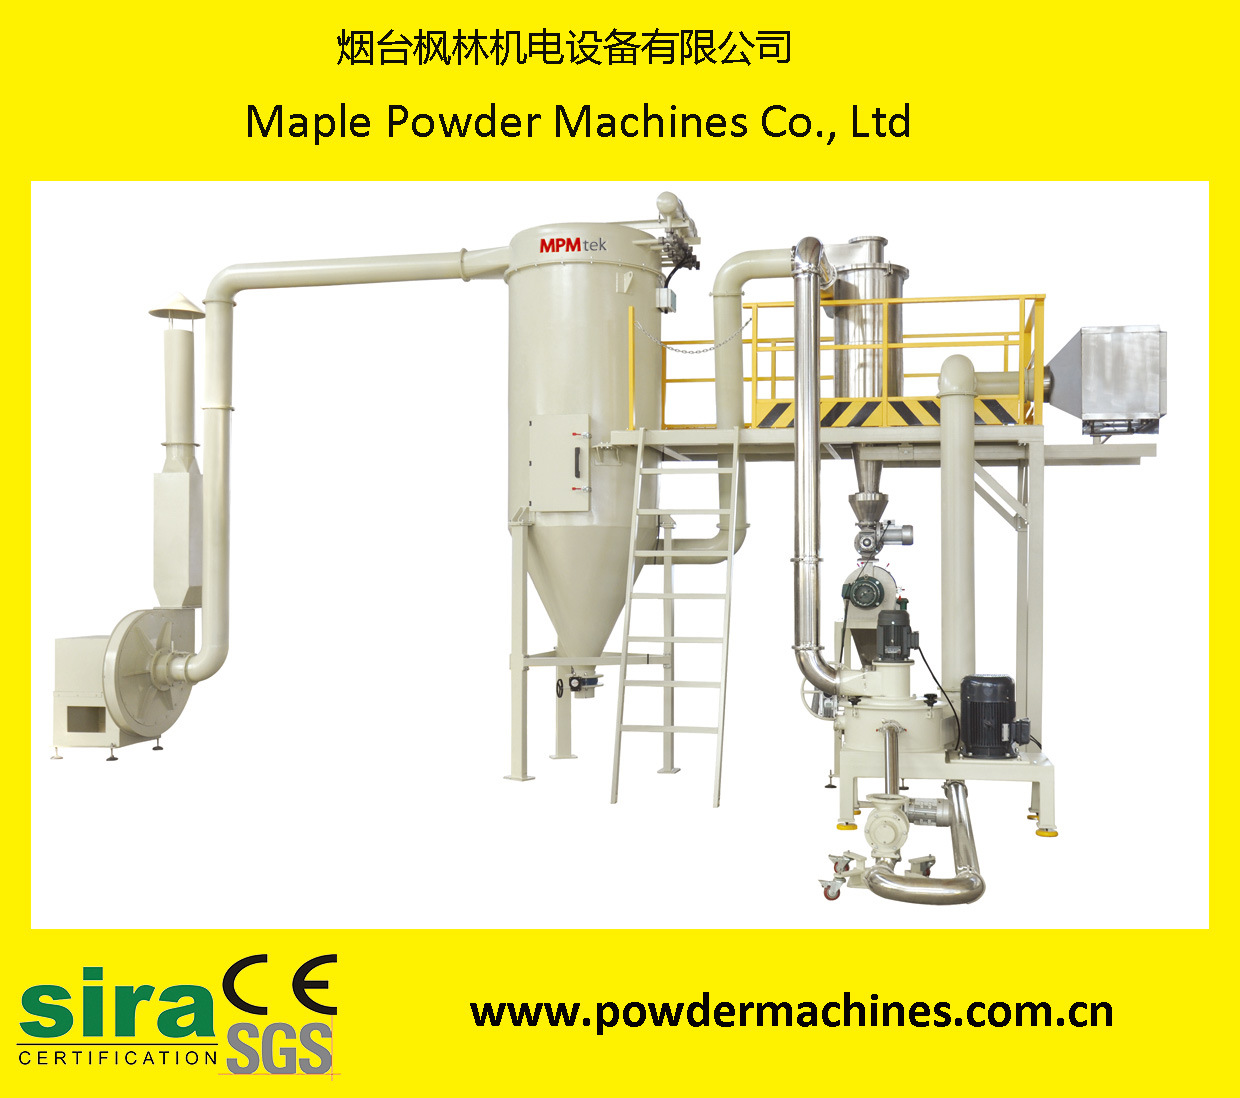 High Output Powder Coating Acm Grinding System